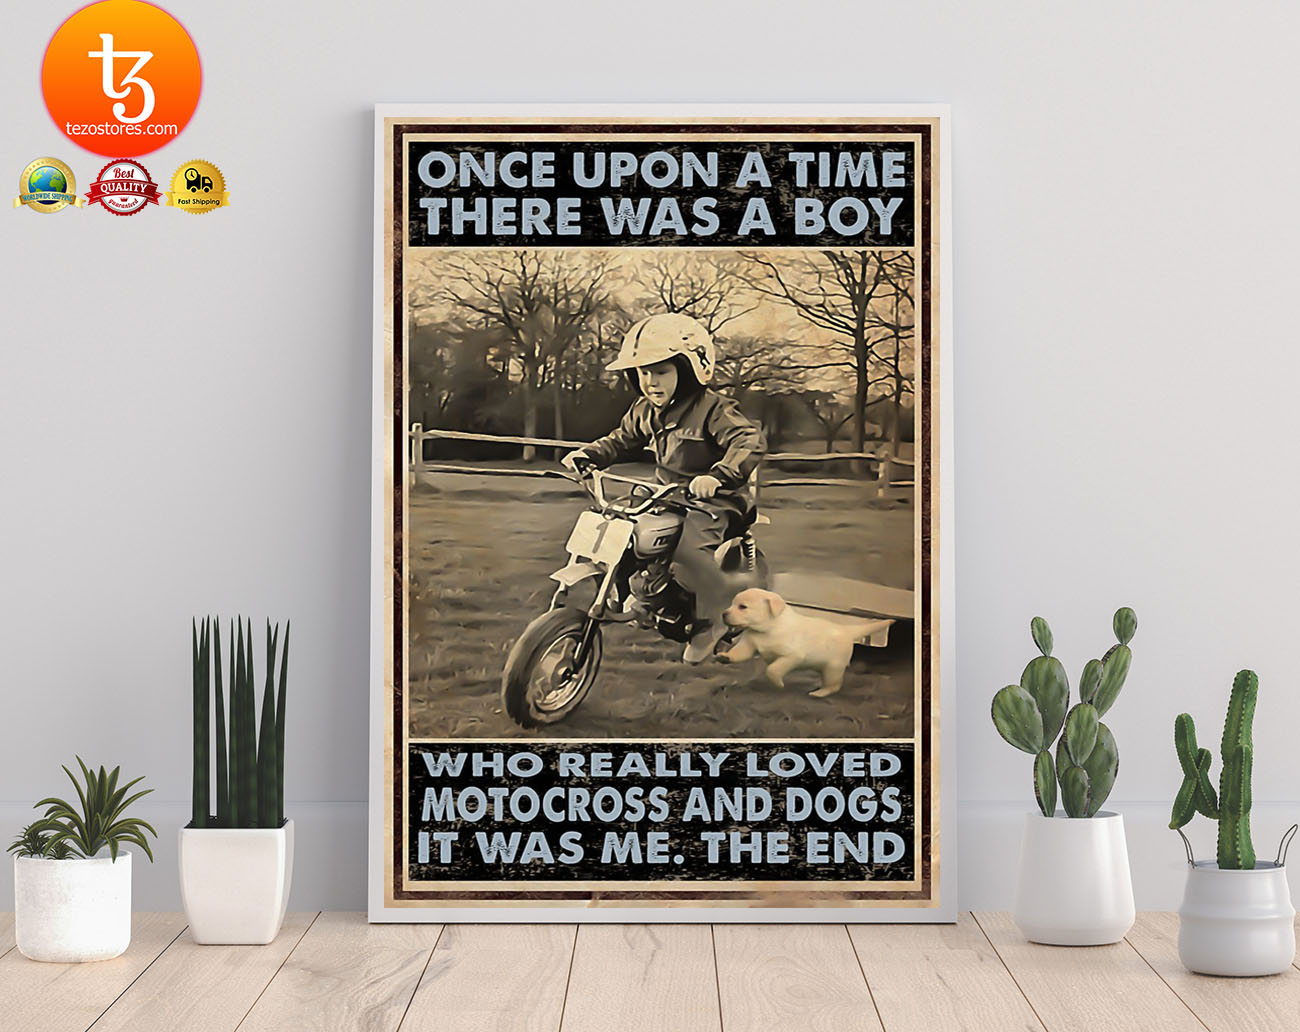 Once upon a time there was a boy who really loved motocross and dogs poster 21